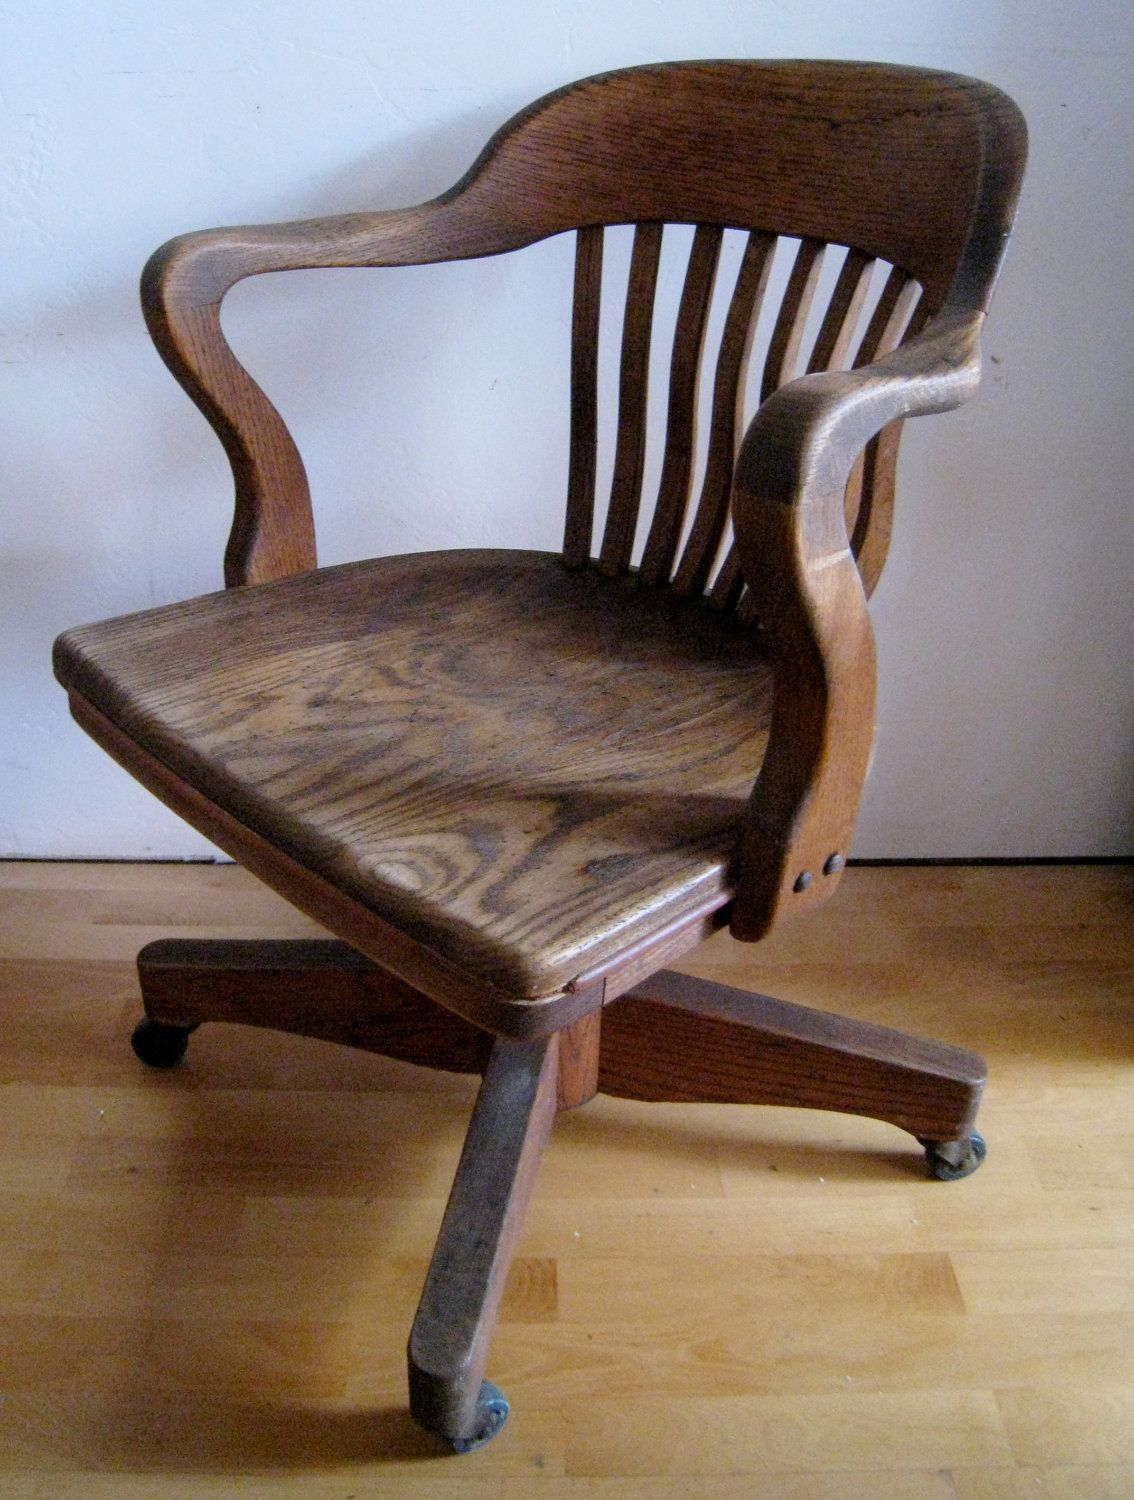 Oak Desk Chair Art Deco Swivel Tilting Rolling Office Chair Via Etsy Vintage Office Chair Wood Desk Chair Art Chair